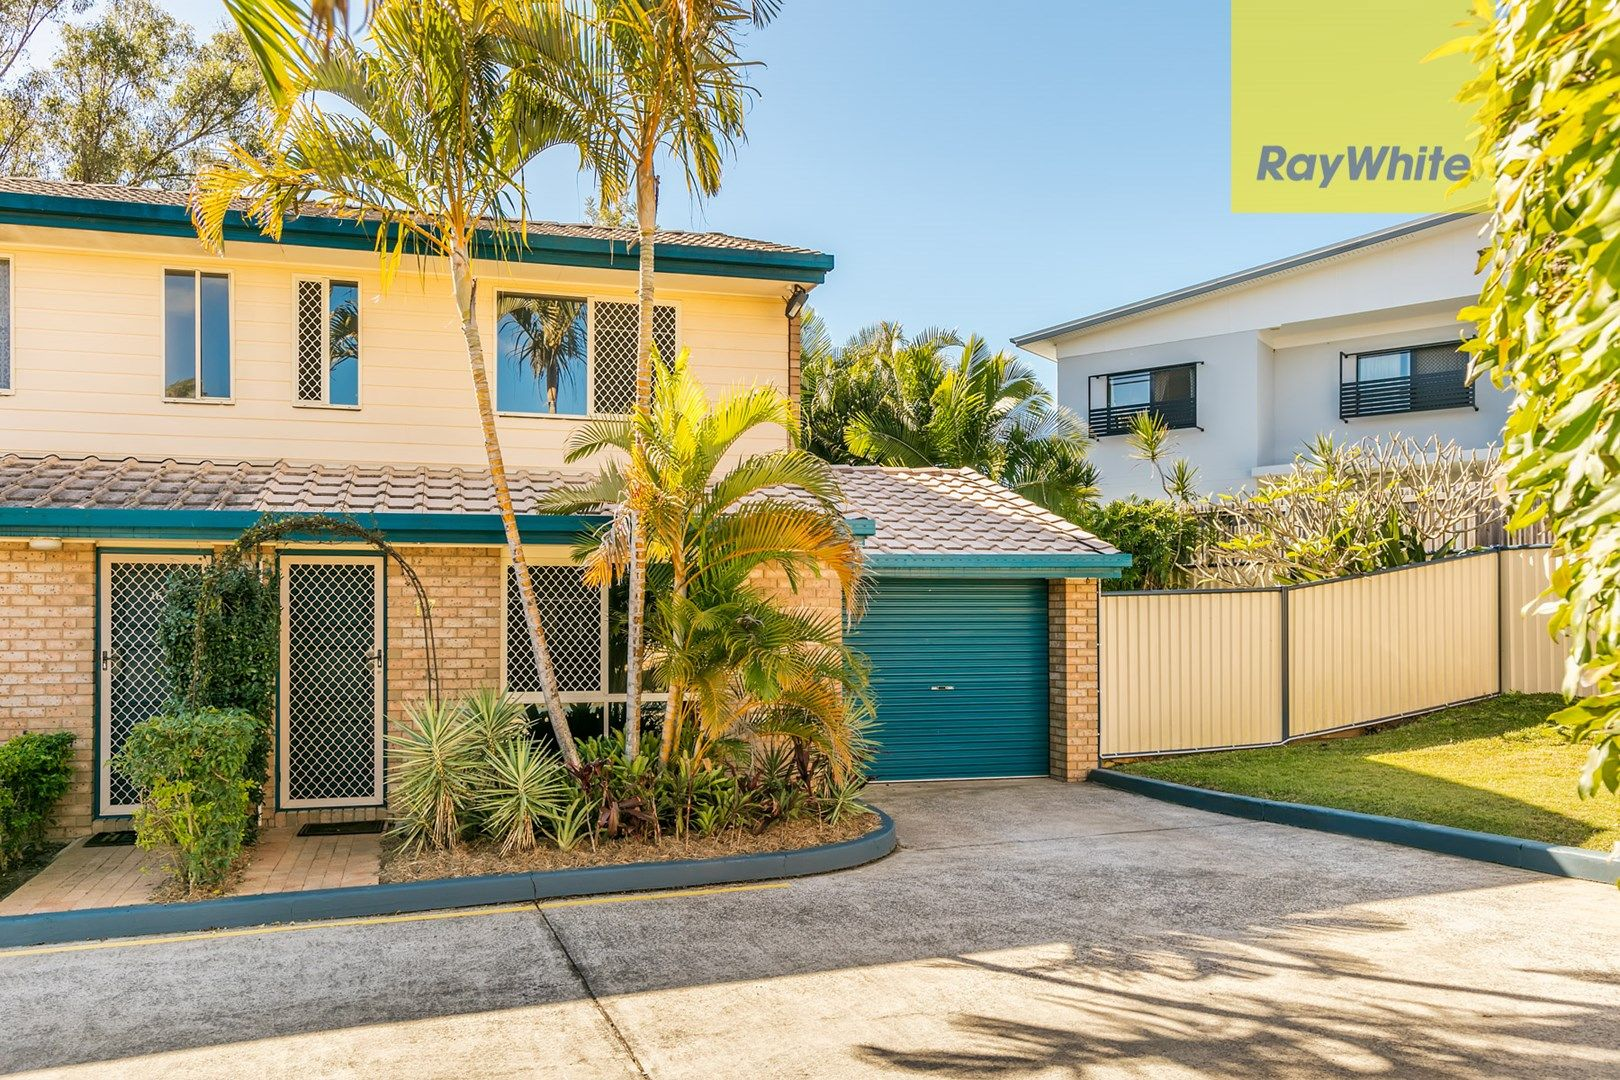 17/15-17 Bourke Street, Waterford West QLD 4133, Image 0